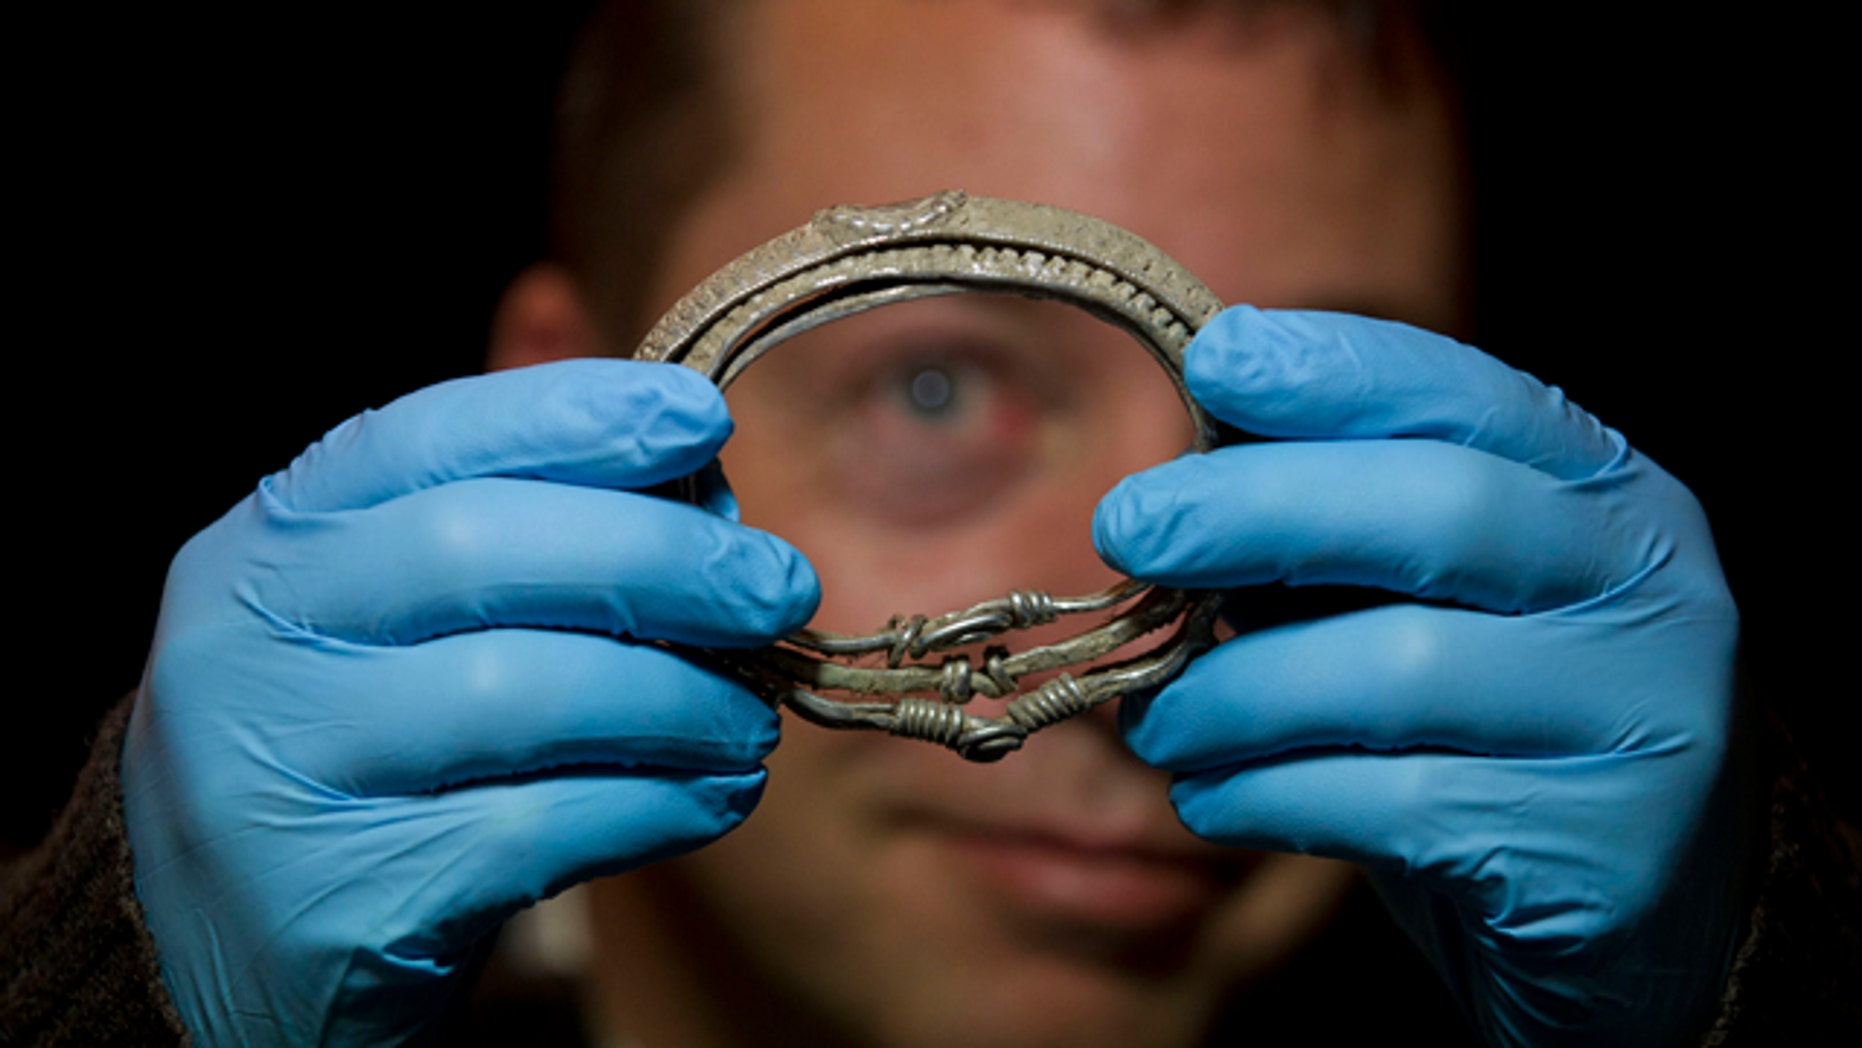 Dec. 14, 2011: Metal detectorist Darren Webster poses with a Viking arm-ring he discovered, estimated to date back to the late ninth or early tenth century, at the British Museum in London. The arm-ring is part of the Silverdale Viking Hoard discovered by Webster in September 2011 in the Silverdale area of North Lancashire, England. It comprises 201 silver objects including arm-rings, coins, finger-rings, ingots, brooch fragments and a fine wire braid.